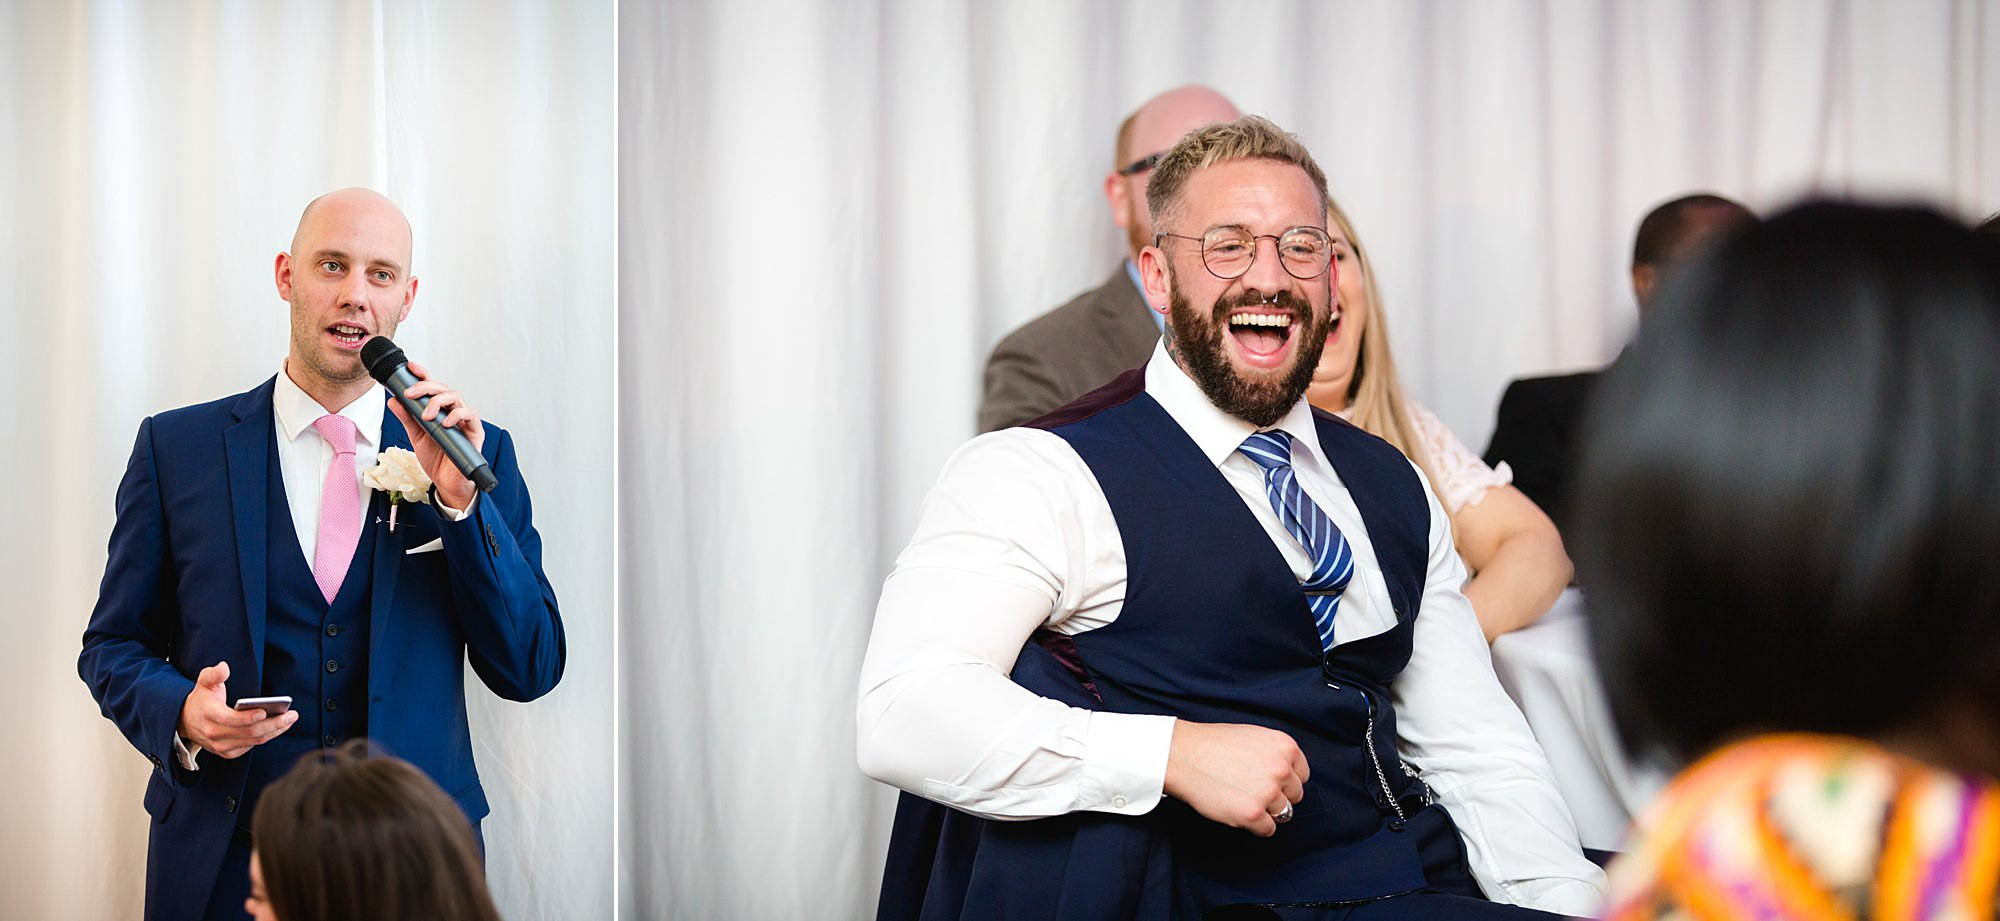 Bank of England Sports Centre wedding guests laugh